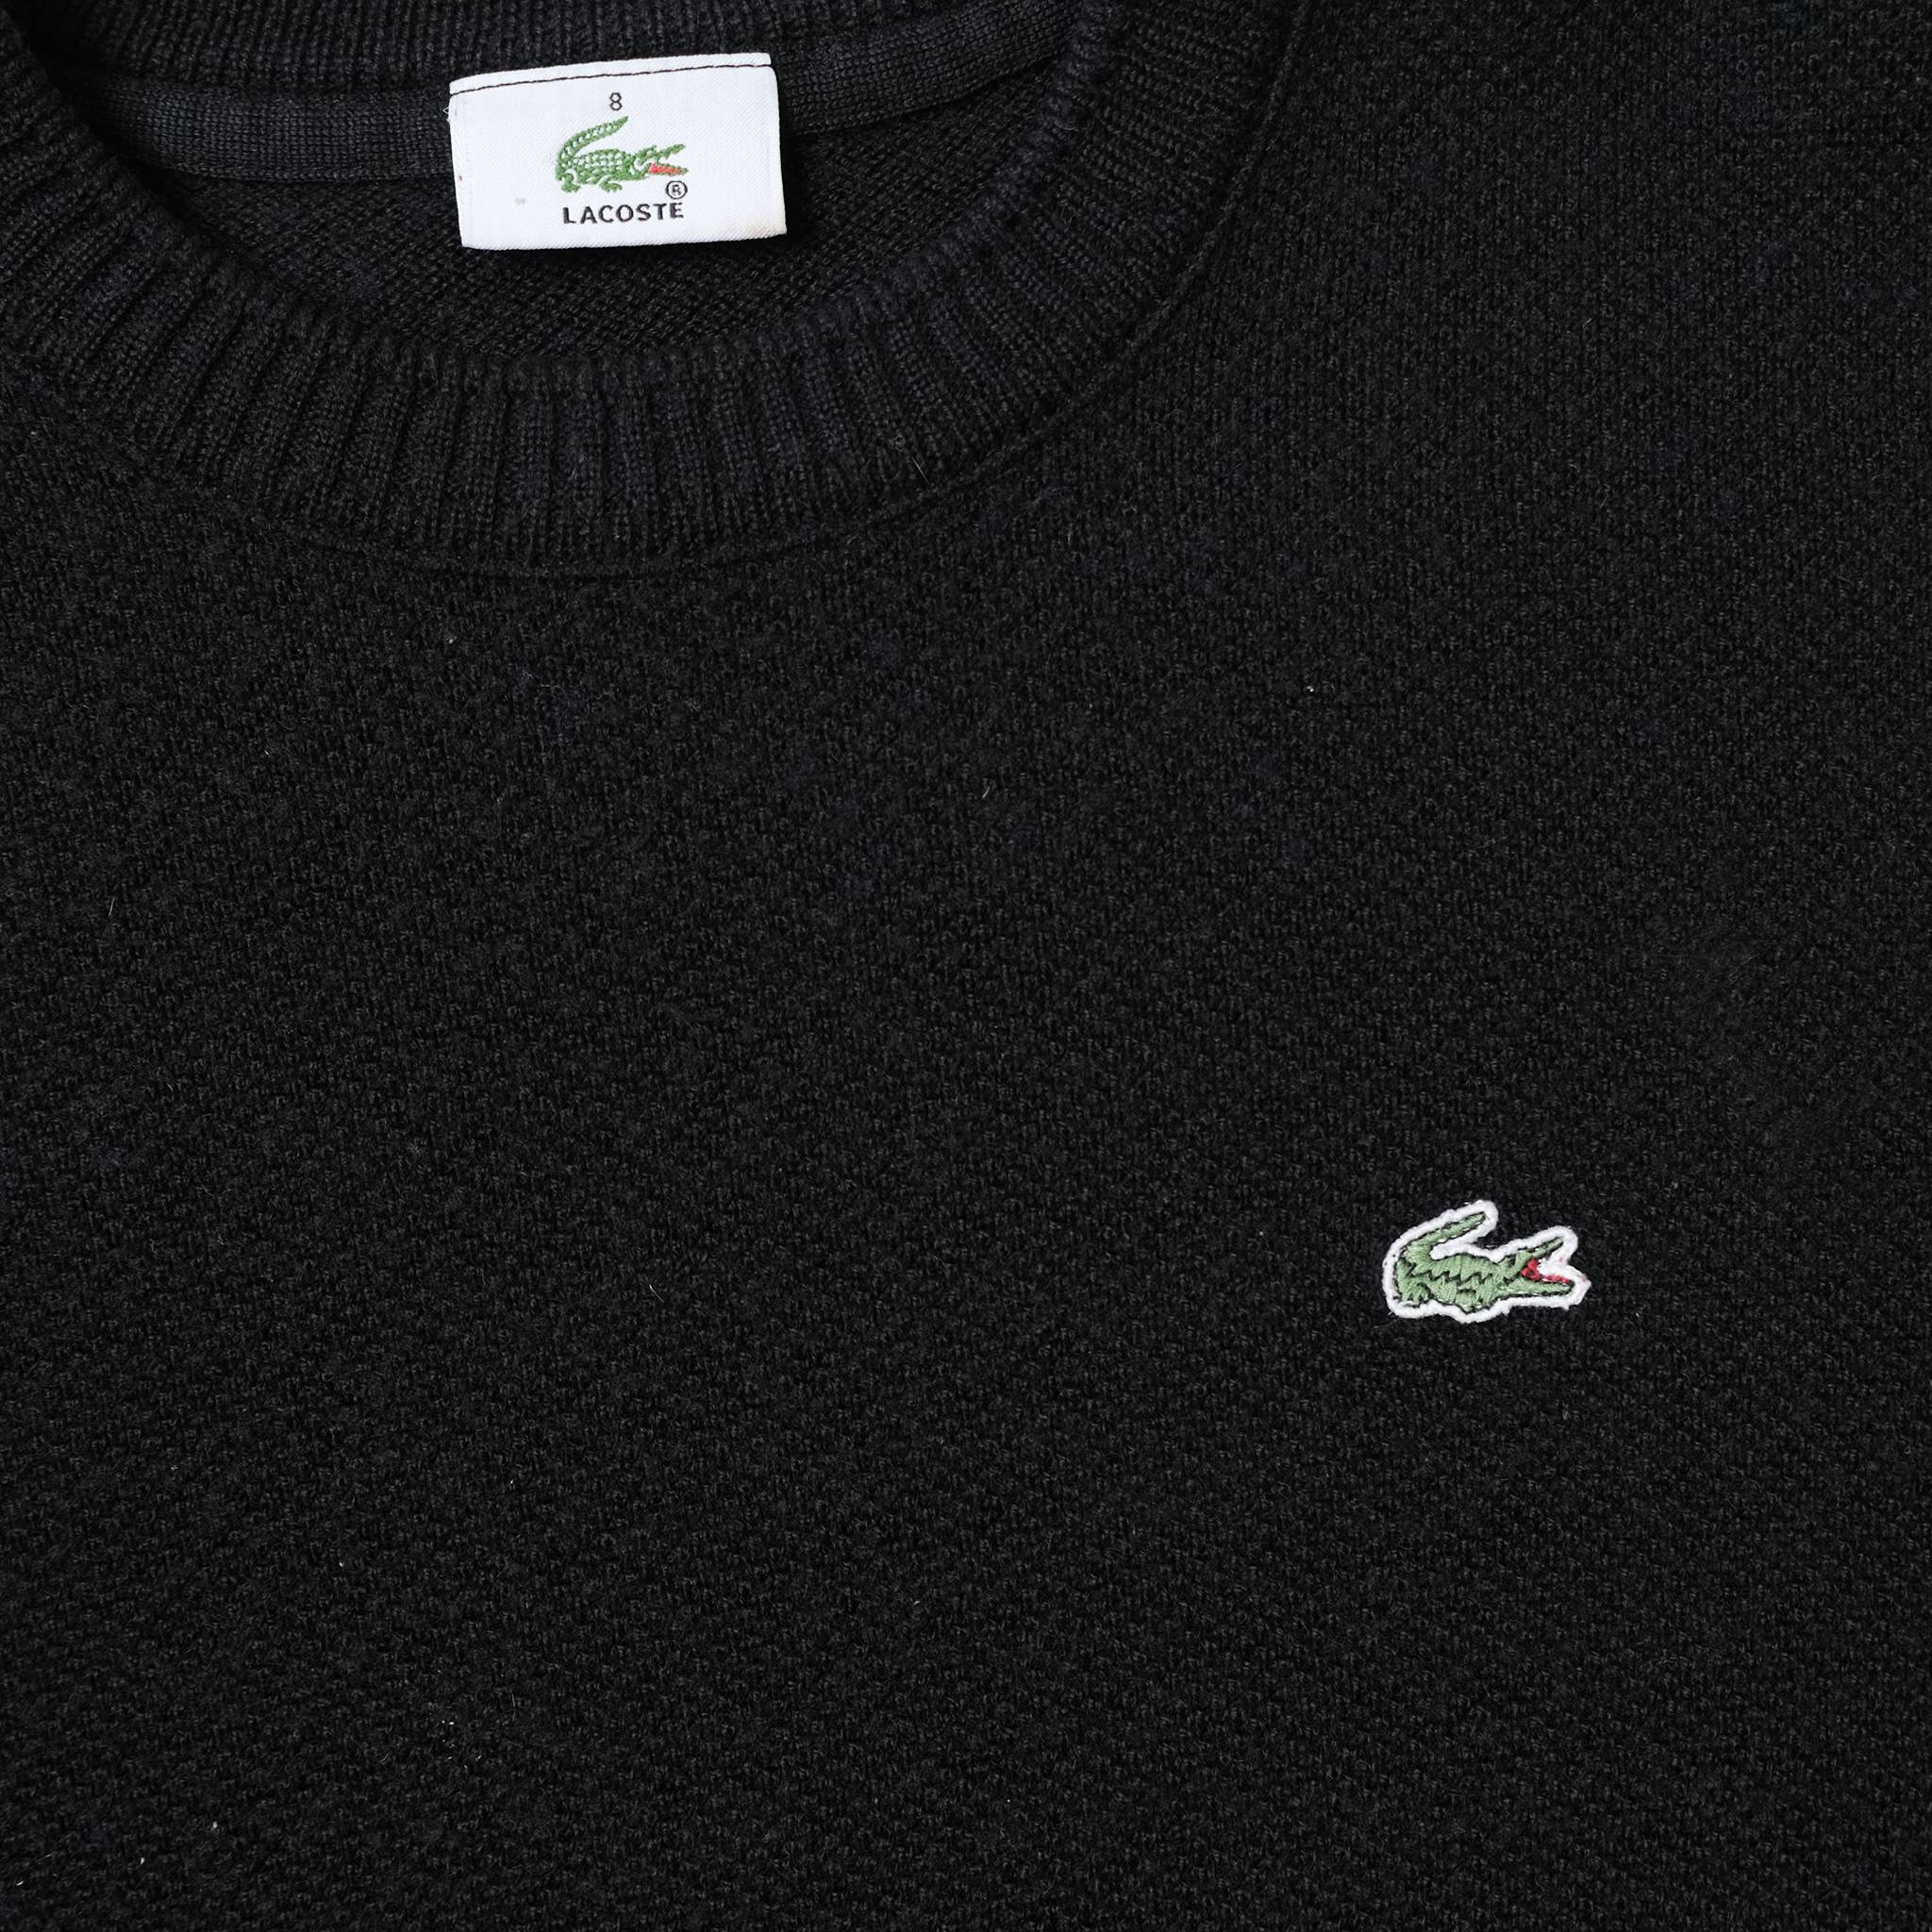 Vintage Lacoste Knit Sweater Medium